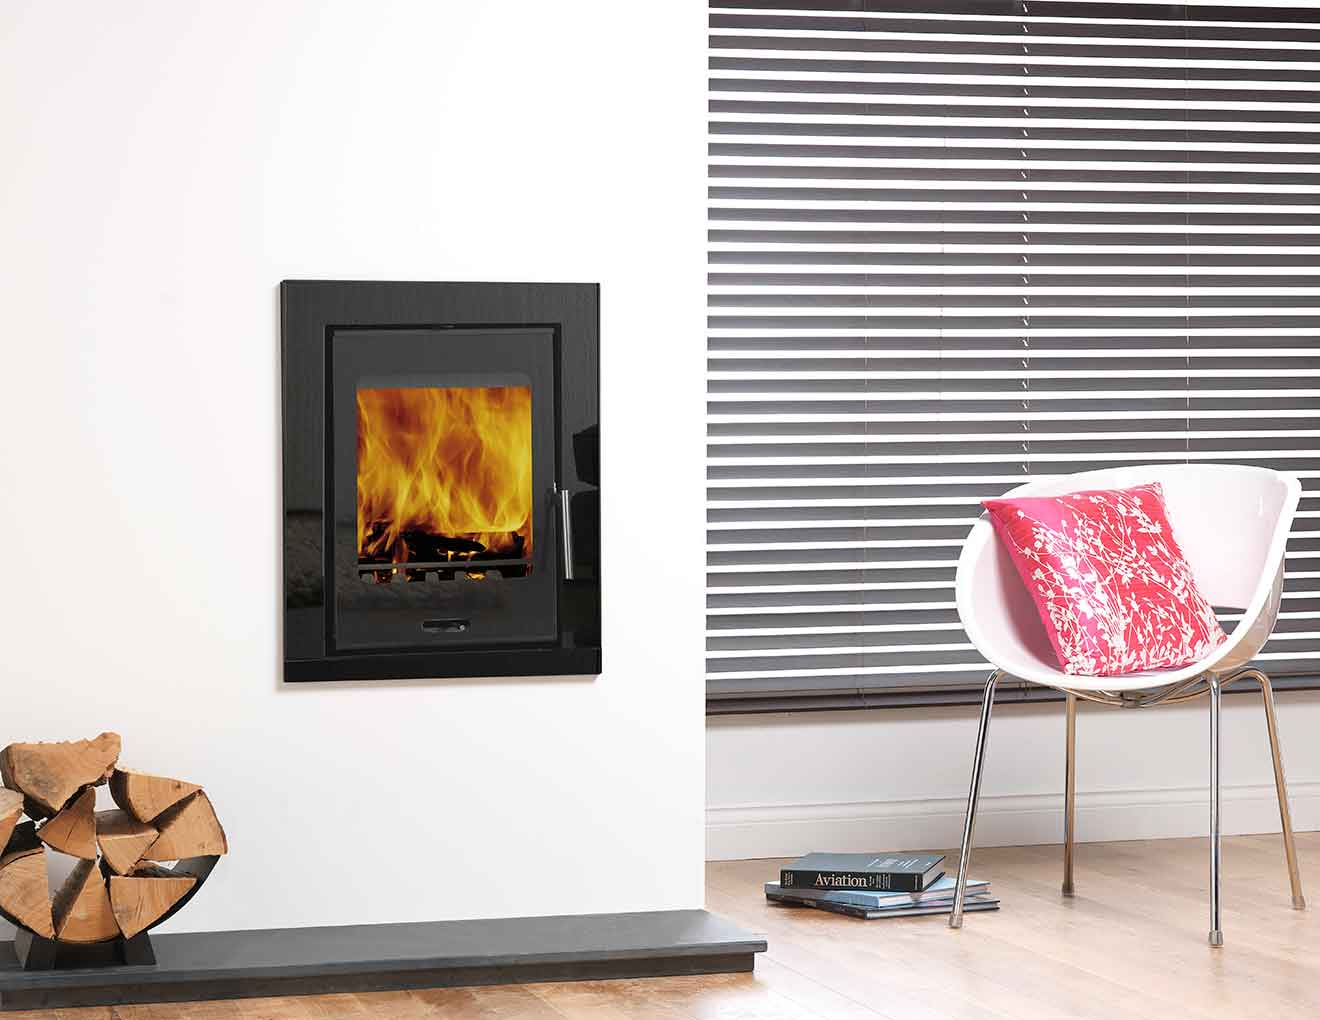 6kW-VitaeCassette-Stove-wall-mounted-floating-image